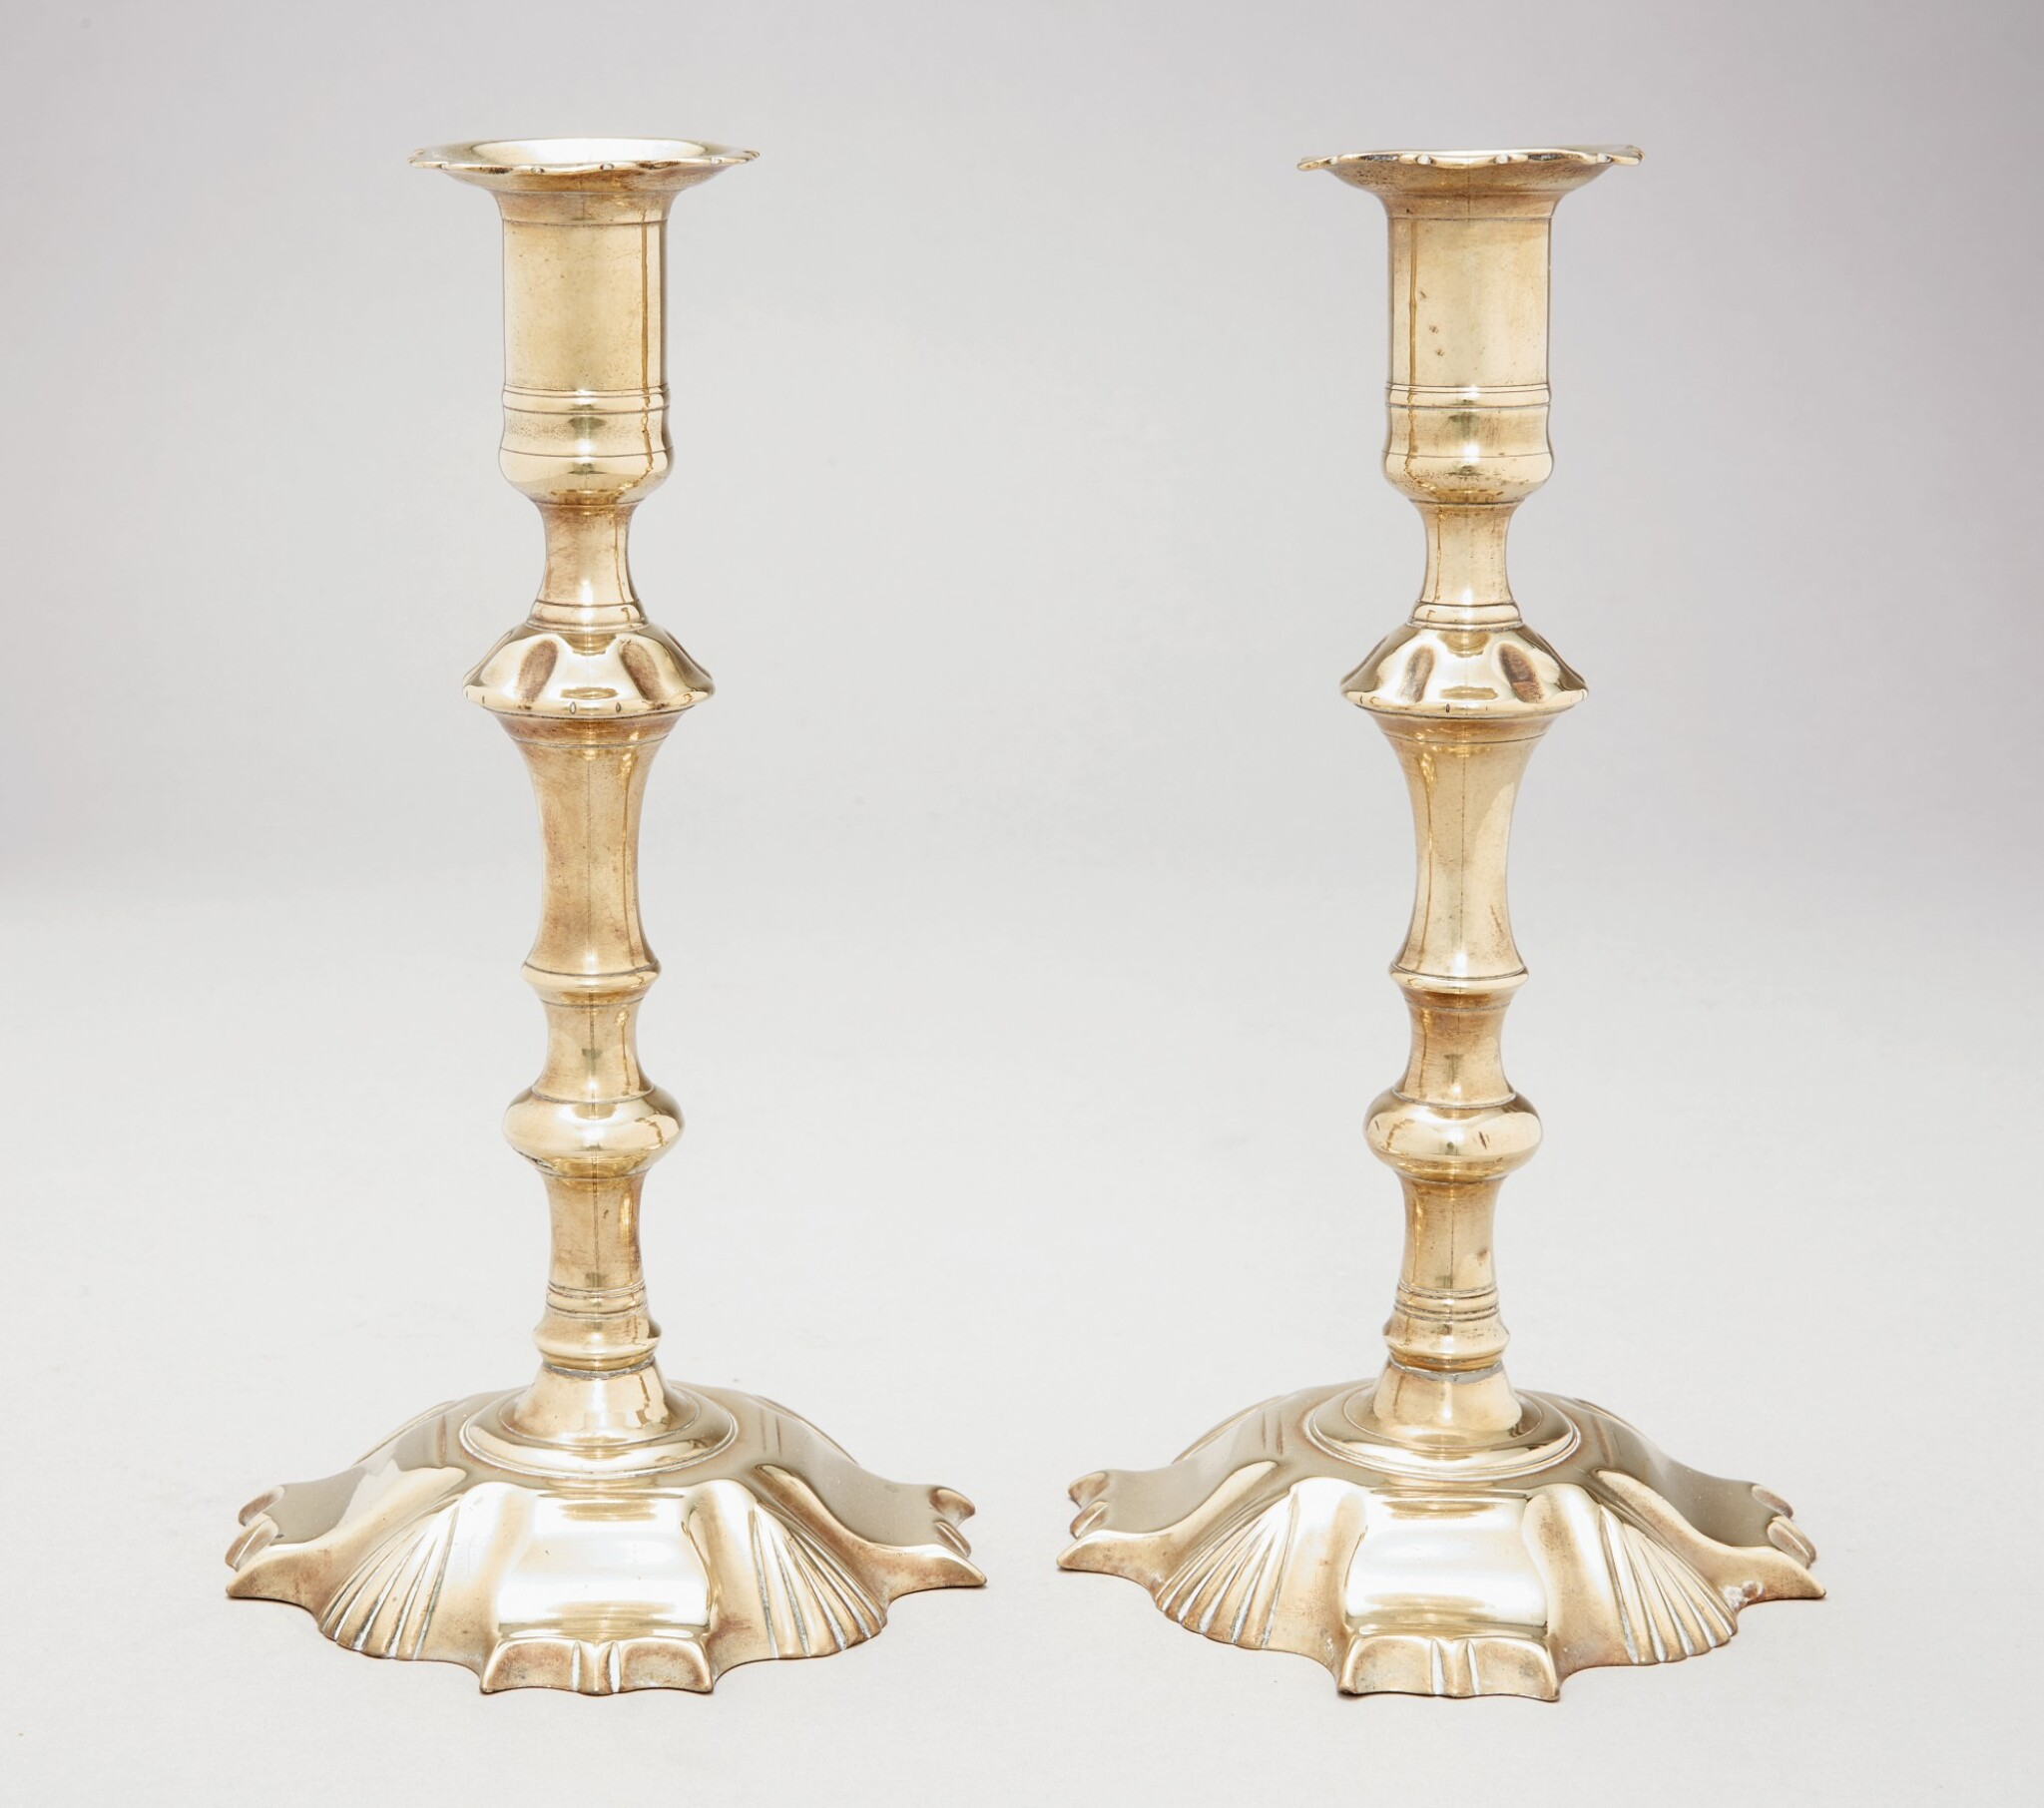 View 1 of Lot 1109. PAIR OF CHIPPENDALE CAST-BRASS PETAL-BASE CANDLESTICKS, ENGLAND, CIRCA 1770.